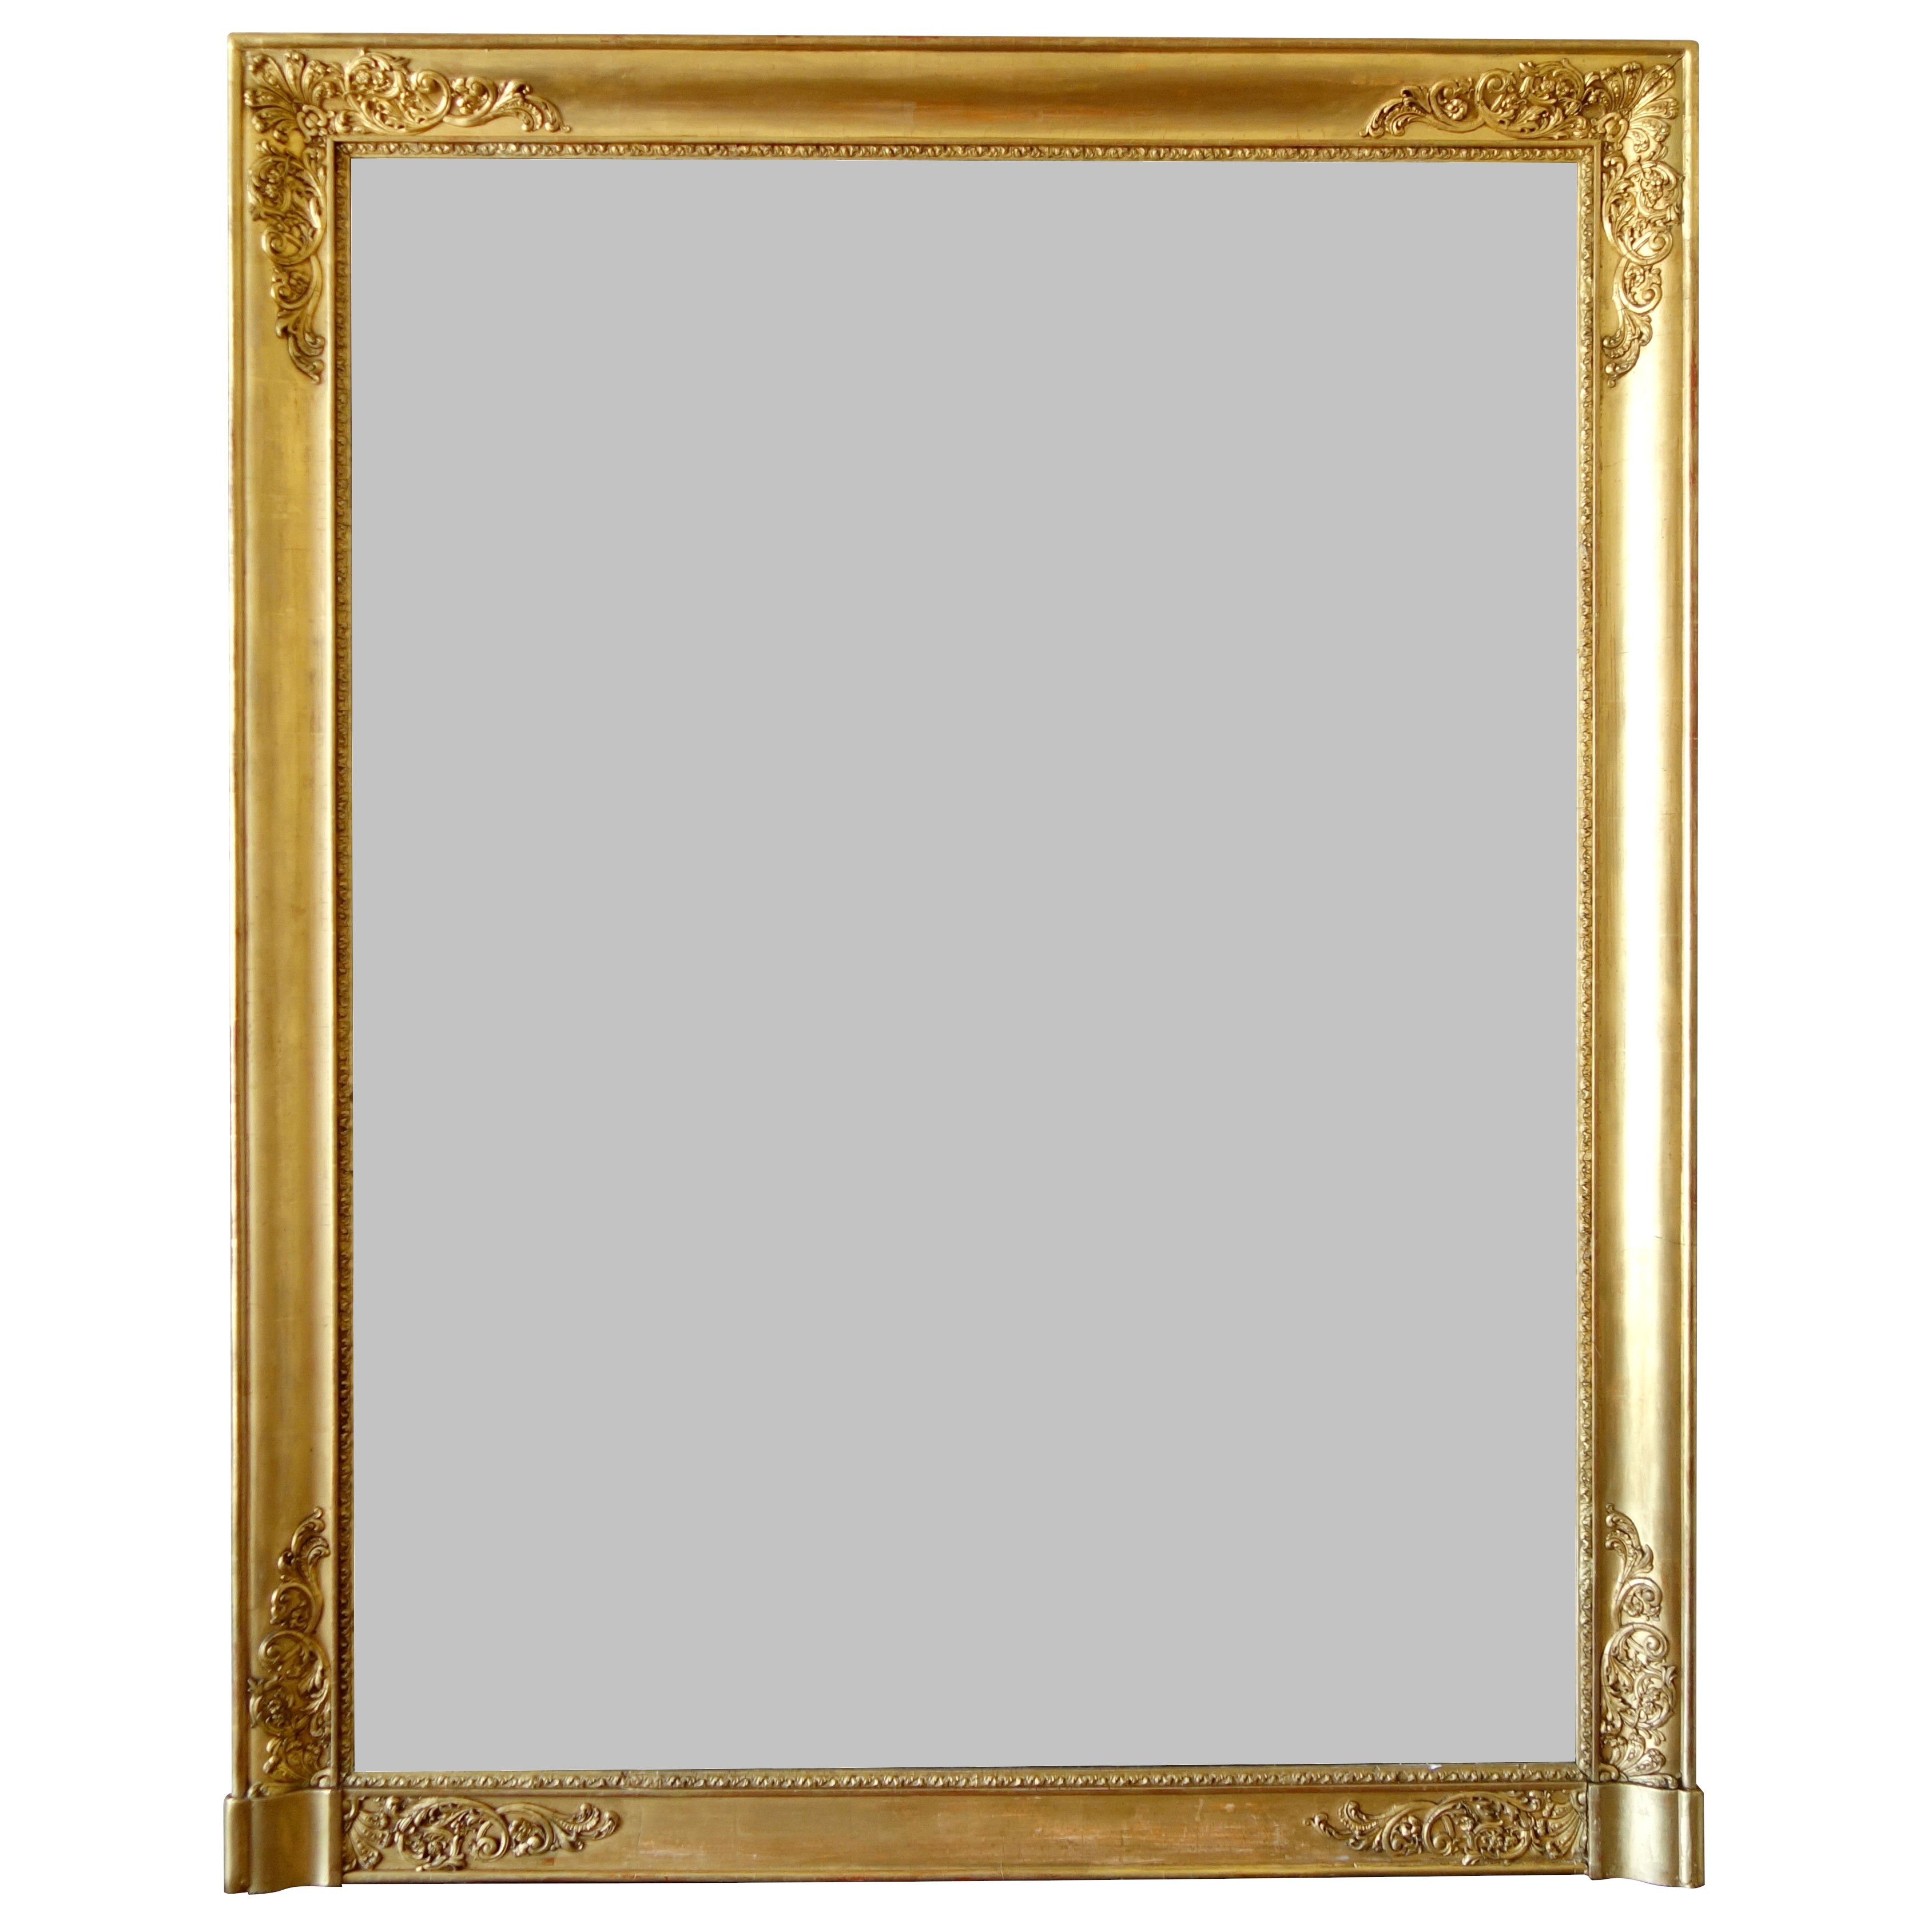 Large gold leaf gilt wood Empire mirror, mercury glass, 19th century - 102.5cm x 130cm